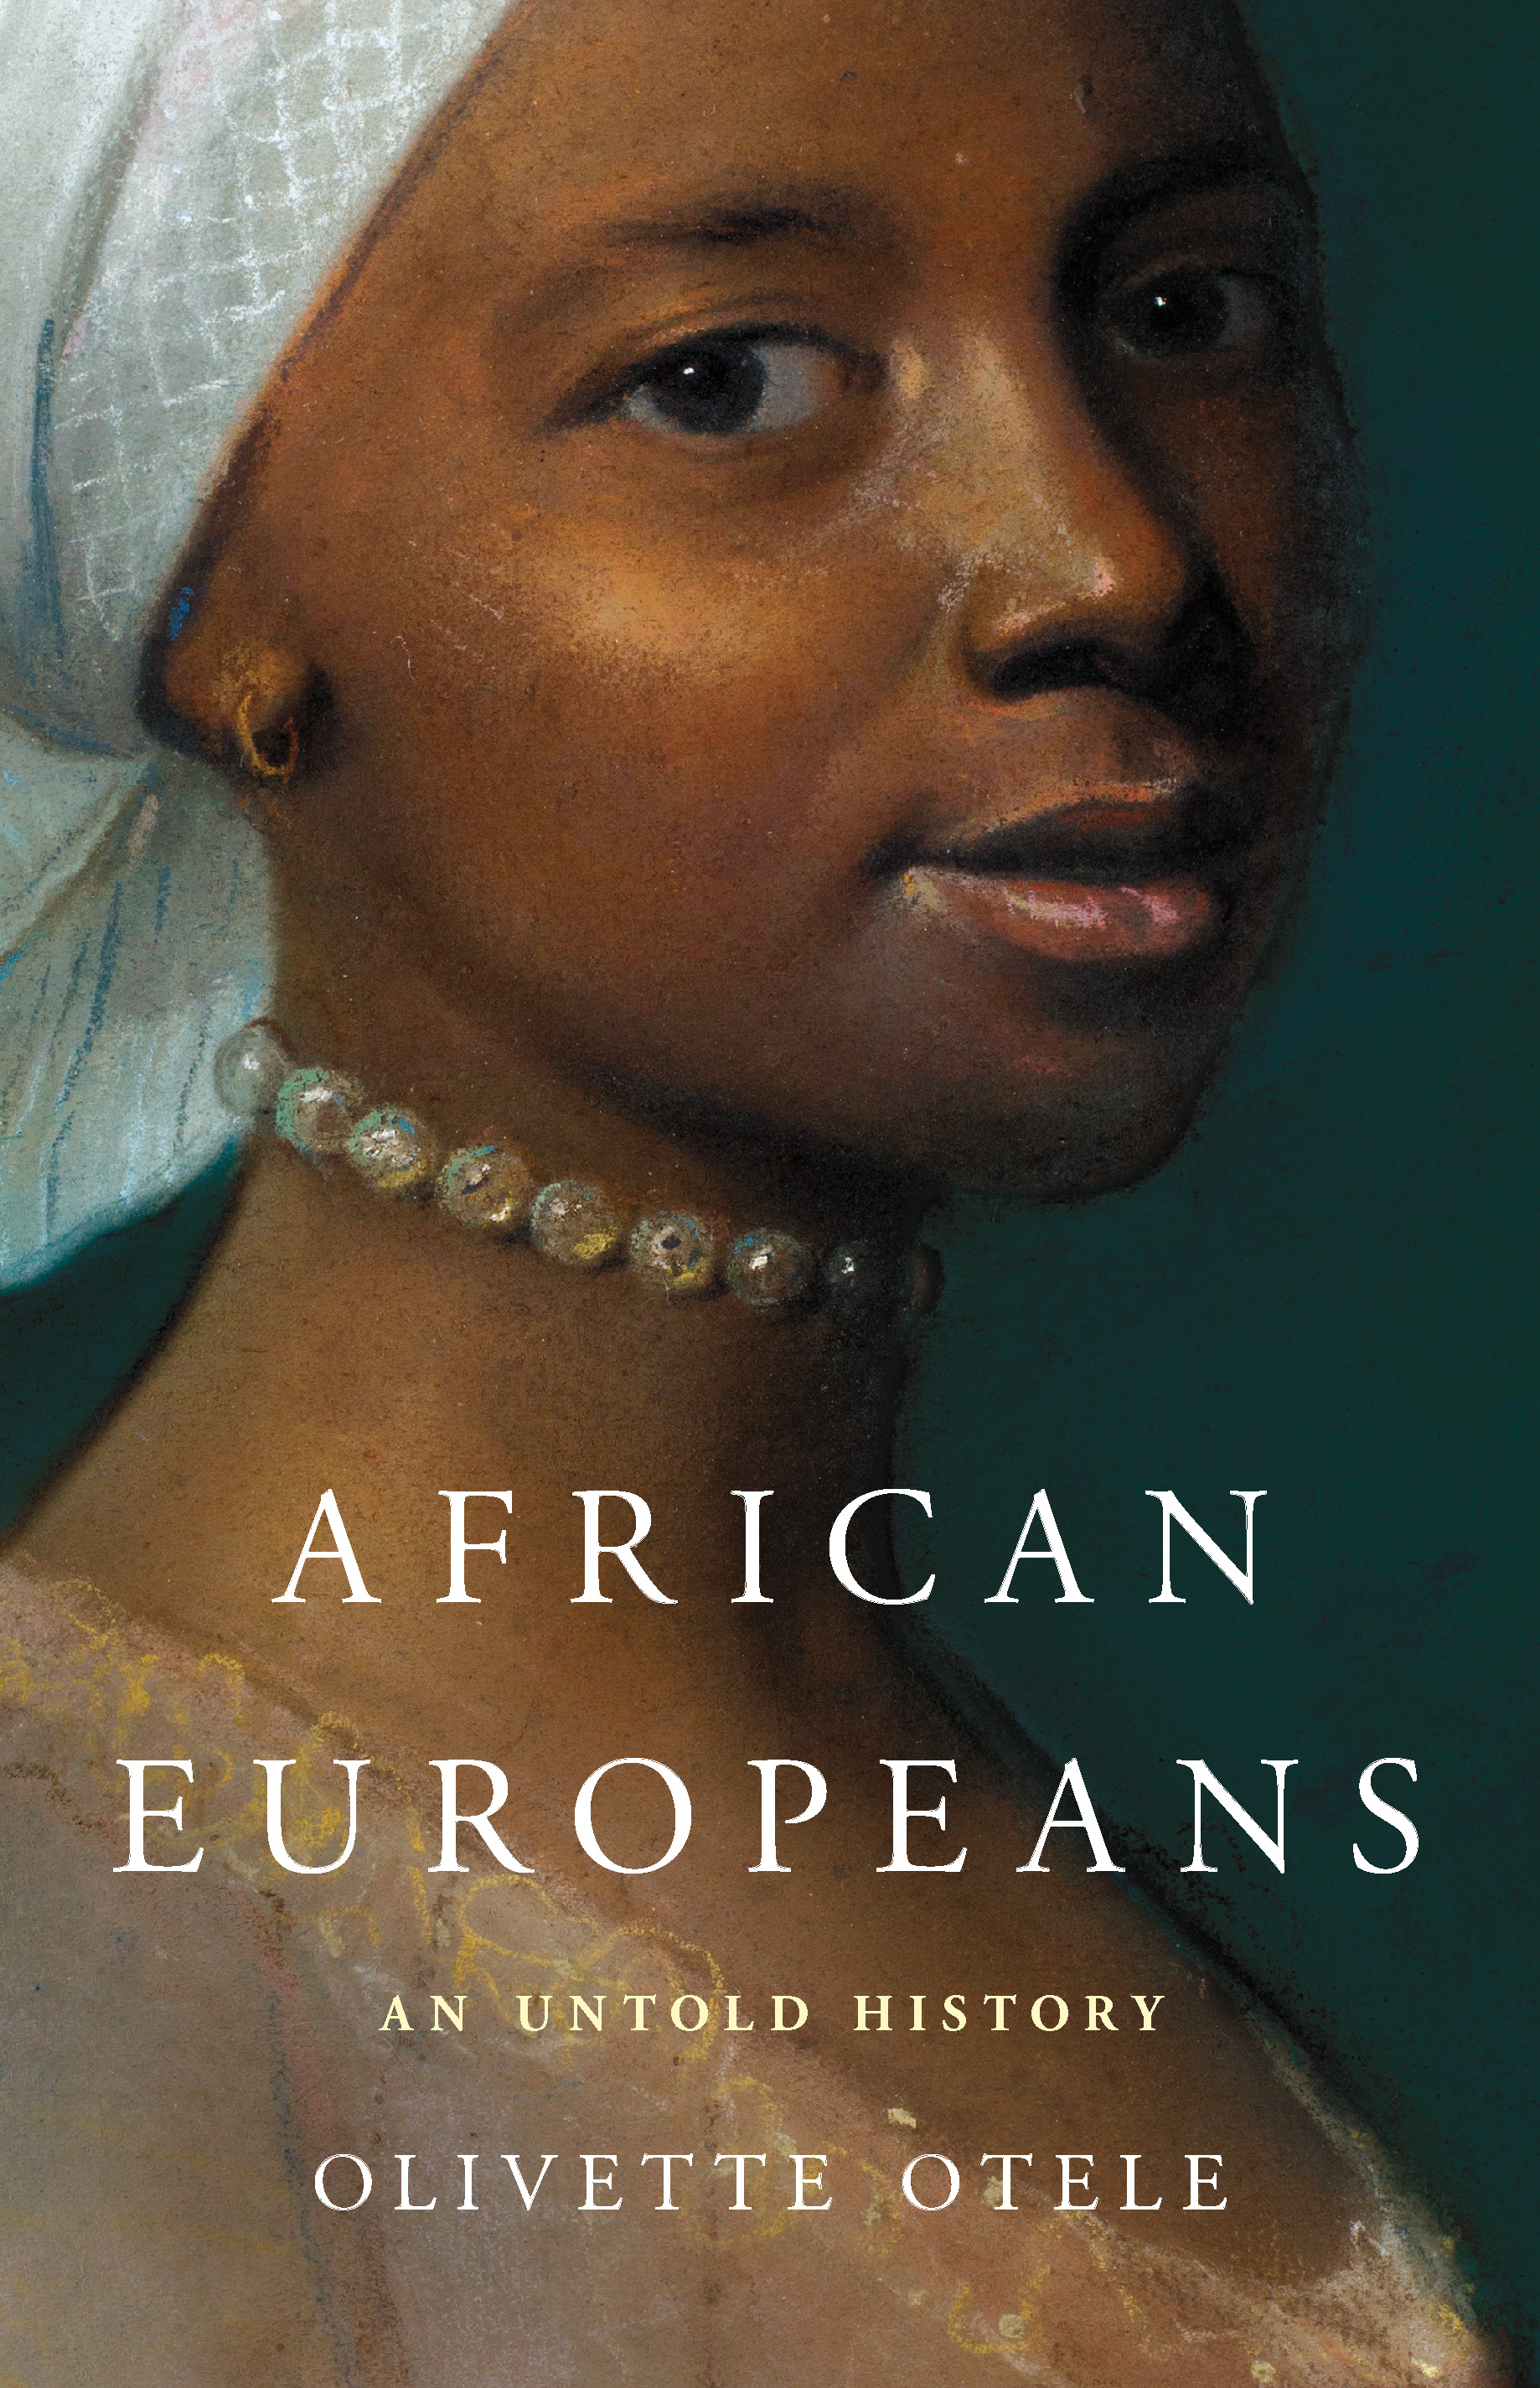 African Europeans: An Untold History, by Olivette Otele